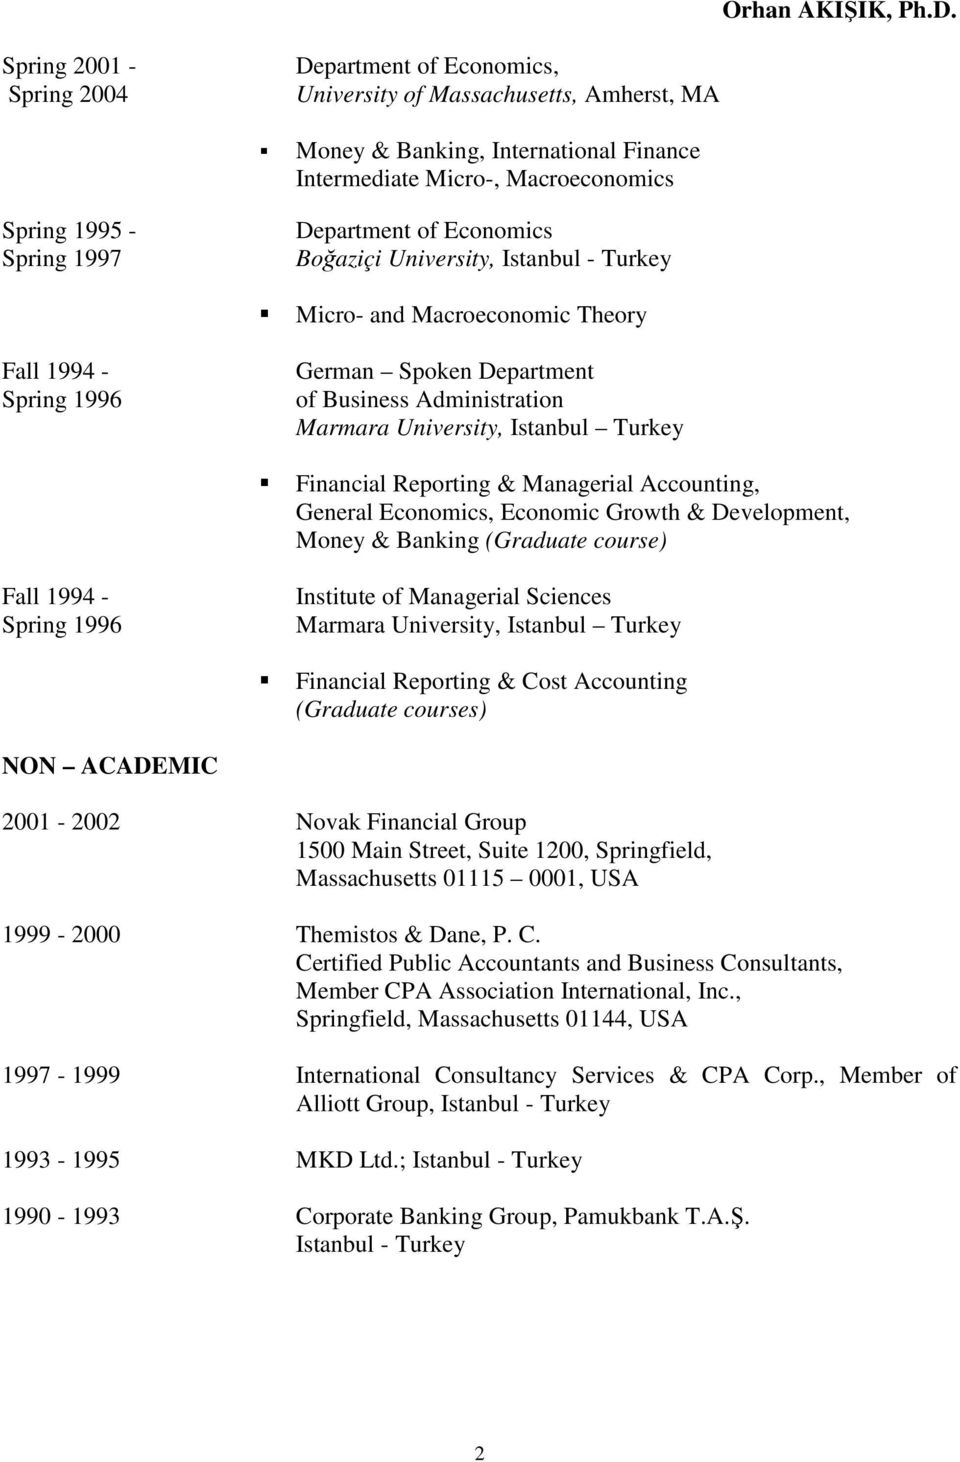 Turkey Financial Reporting & Managerial Accounting, General Economics, Economic Growth & Development, Money & Banking (Graduate course) Fall 1994 - Spring 1996 Institute of Managerial Sciences